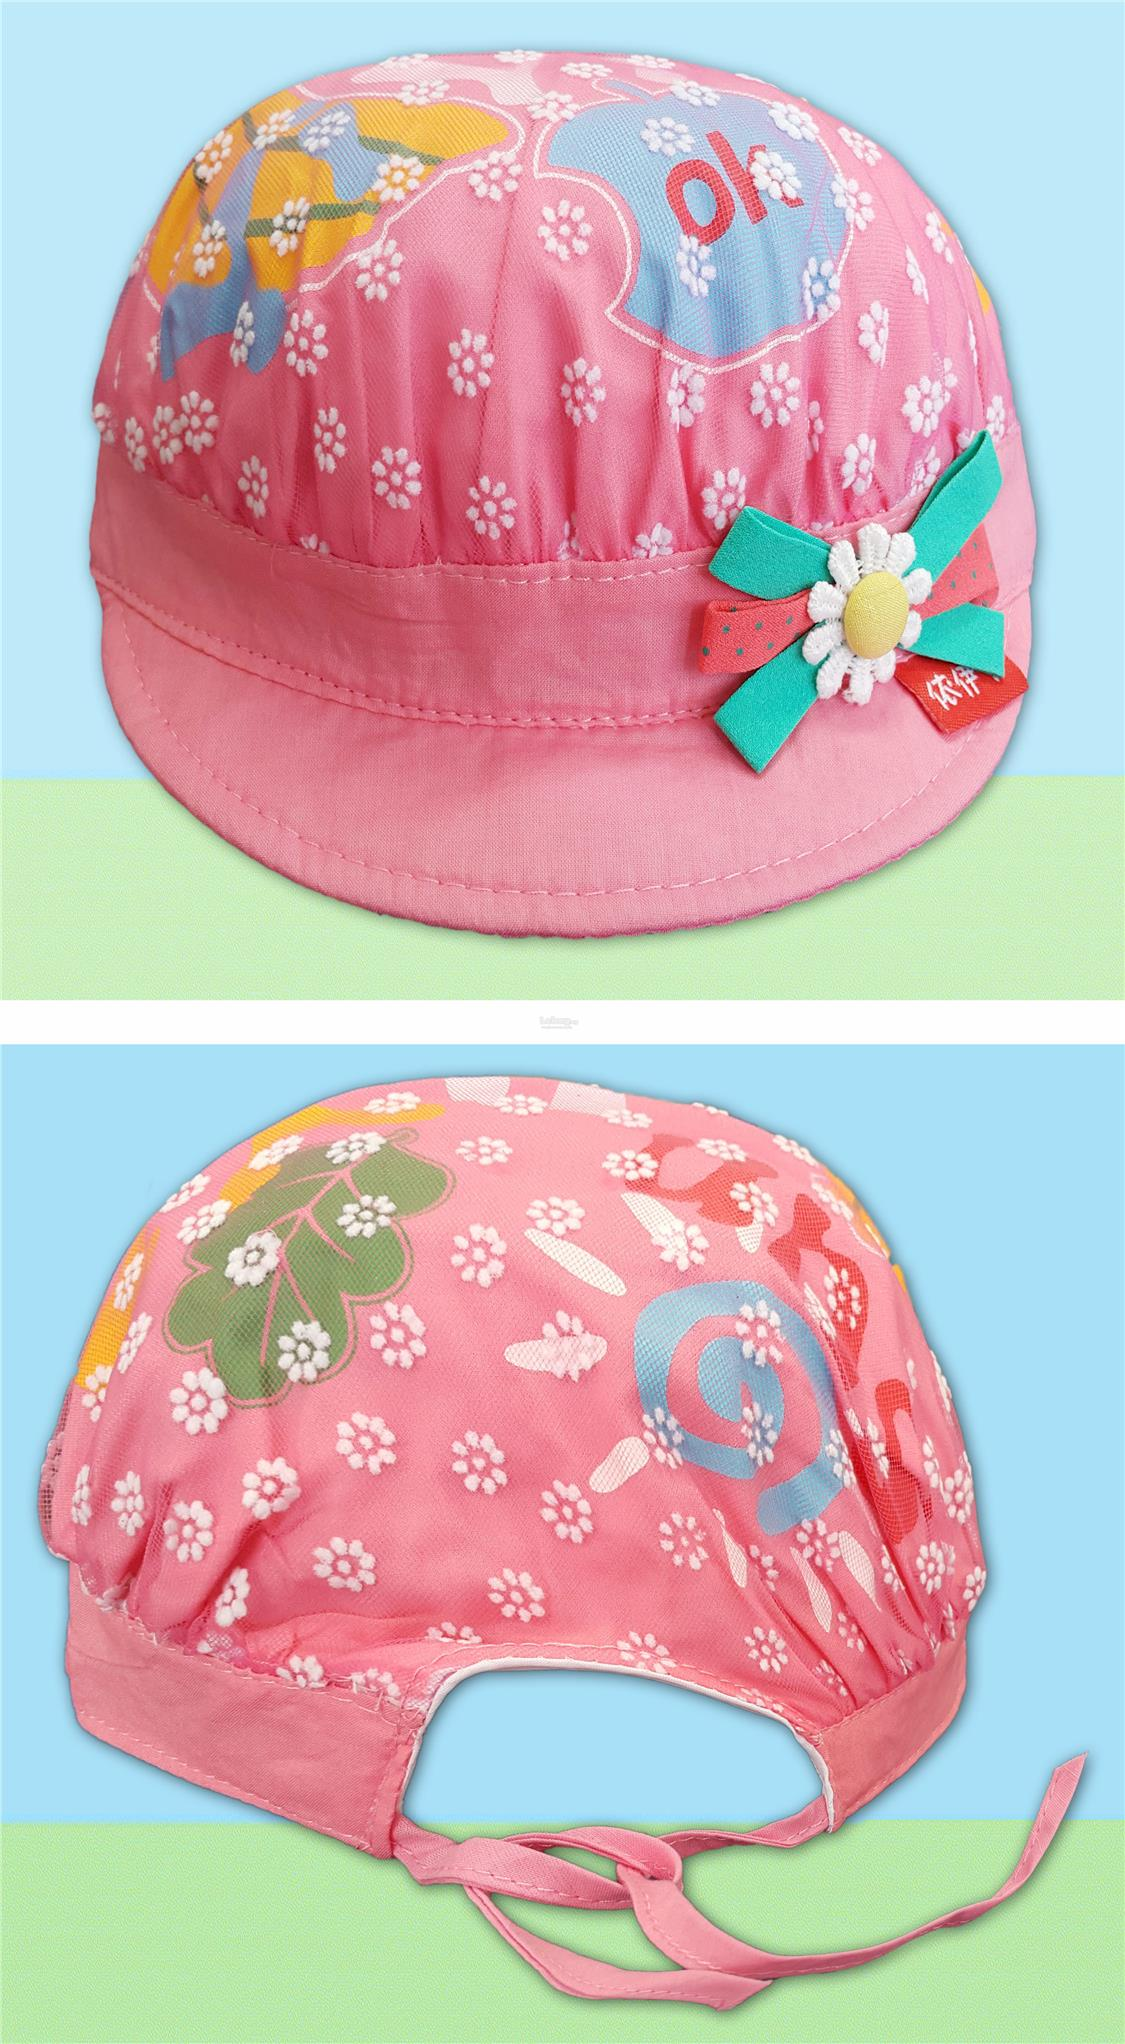 Baby Girls Infant Caps Hats with Colourful Printings and Lace